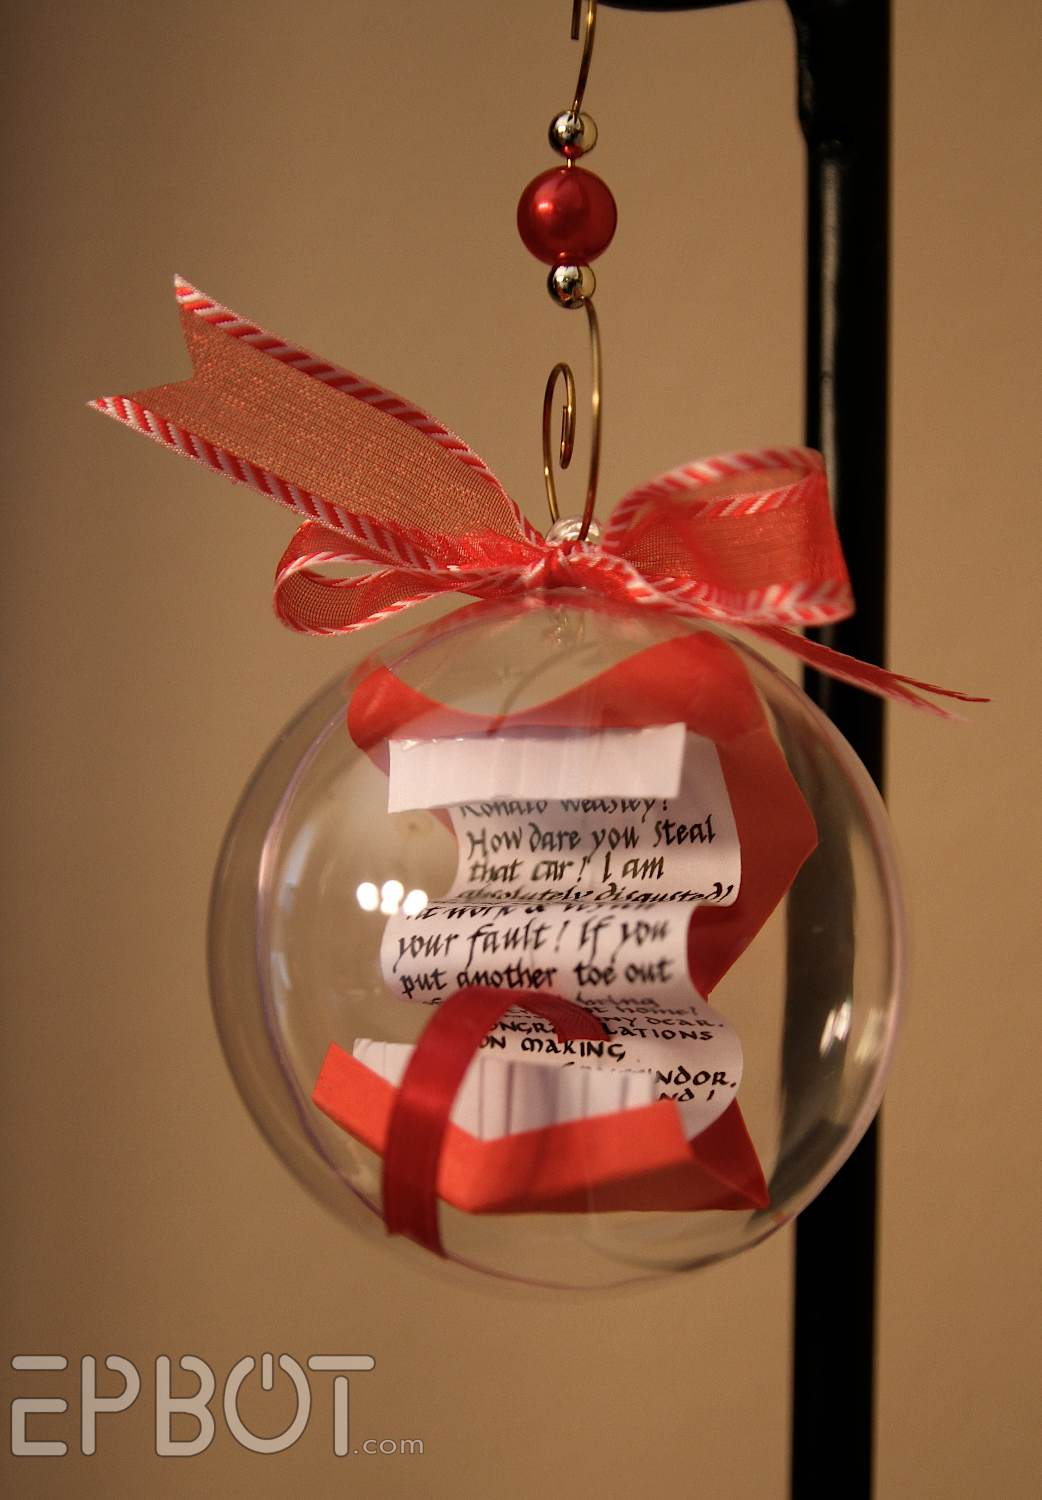 Harry potter christmas ornament - Incredible Floating Howler Craft From Harry Potter